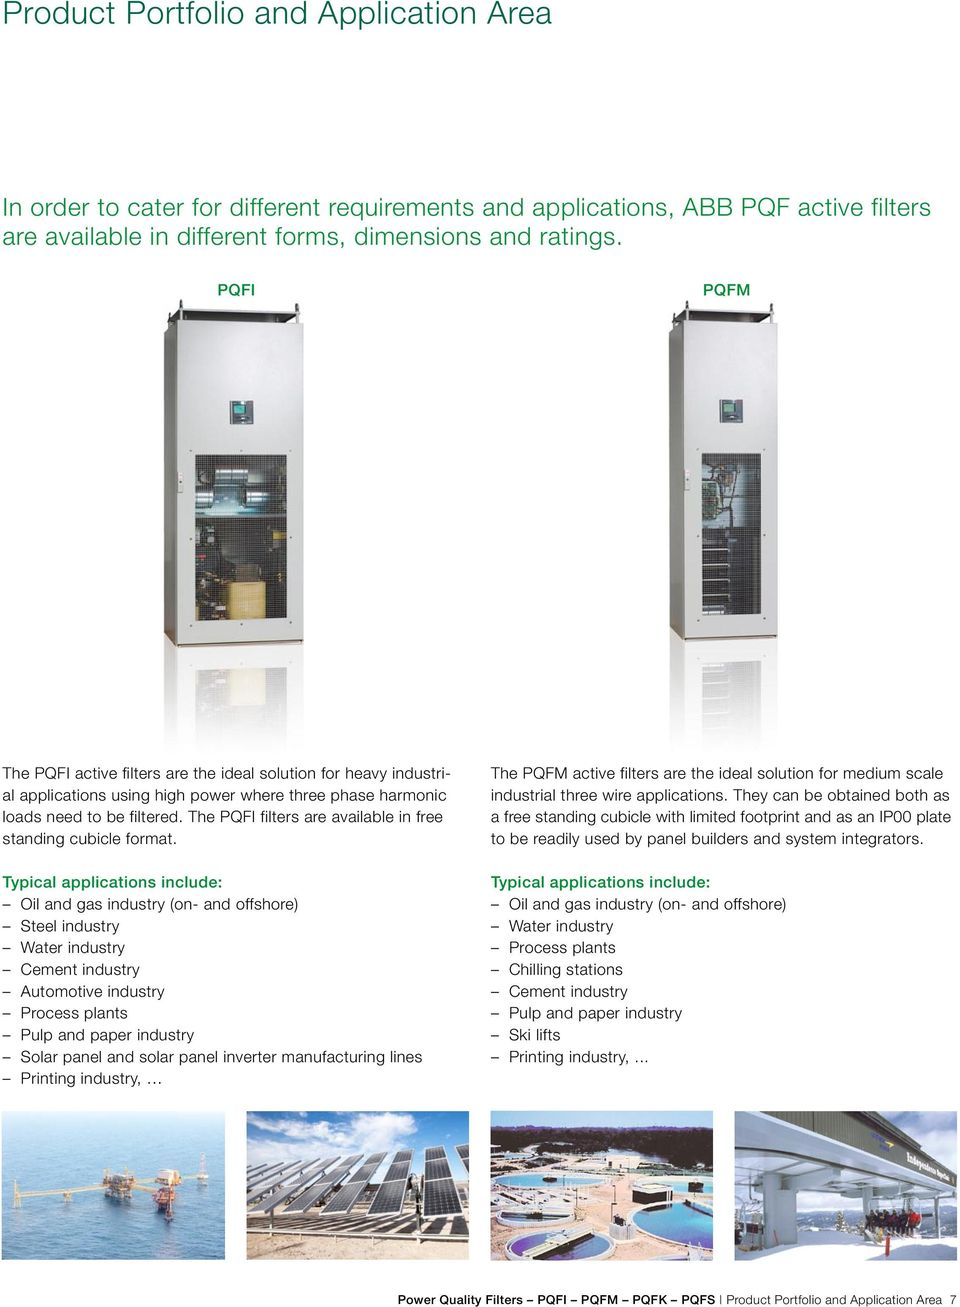 Power Quality Filters Pqfi Pqfm Pqfk Pqfs Improving Analog Amper Panel Meter Fort Type Ob 45a The Are Available In Free Standing Cubicle Format